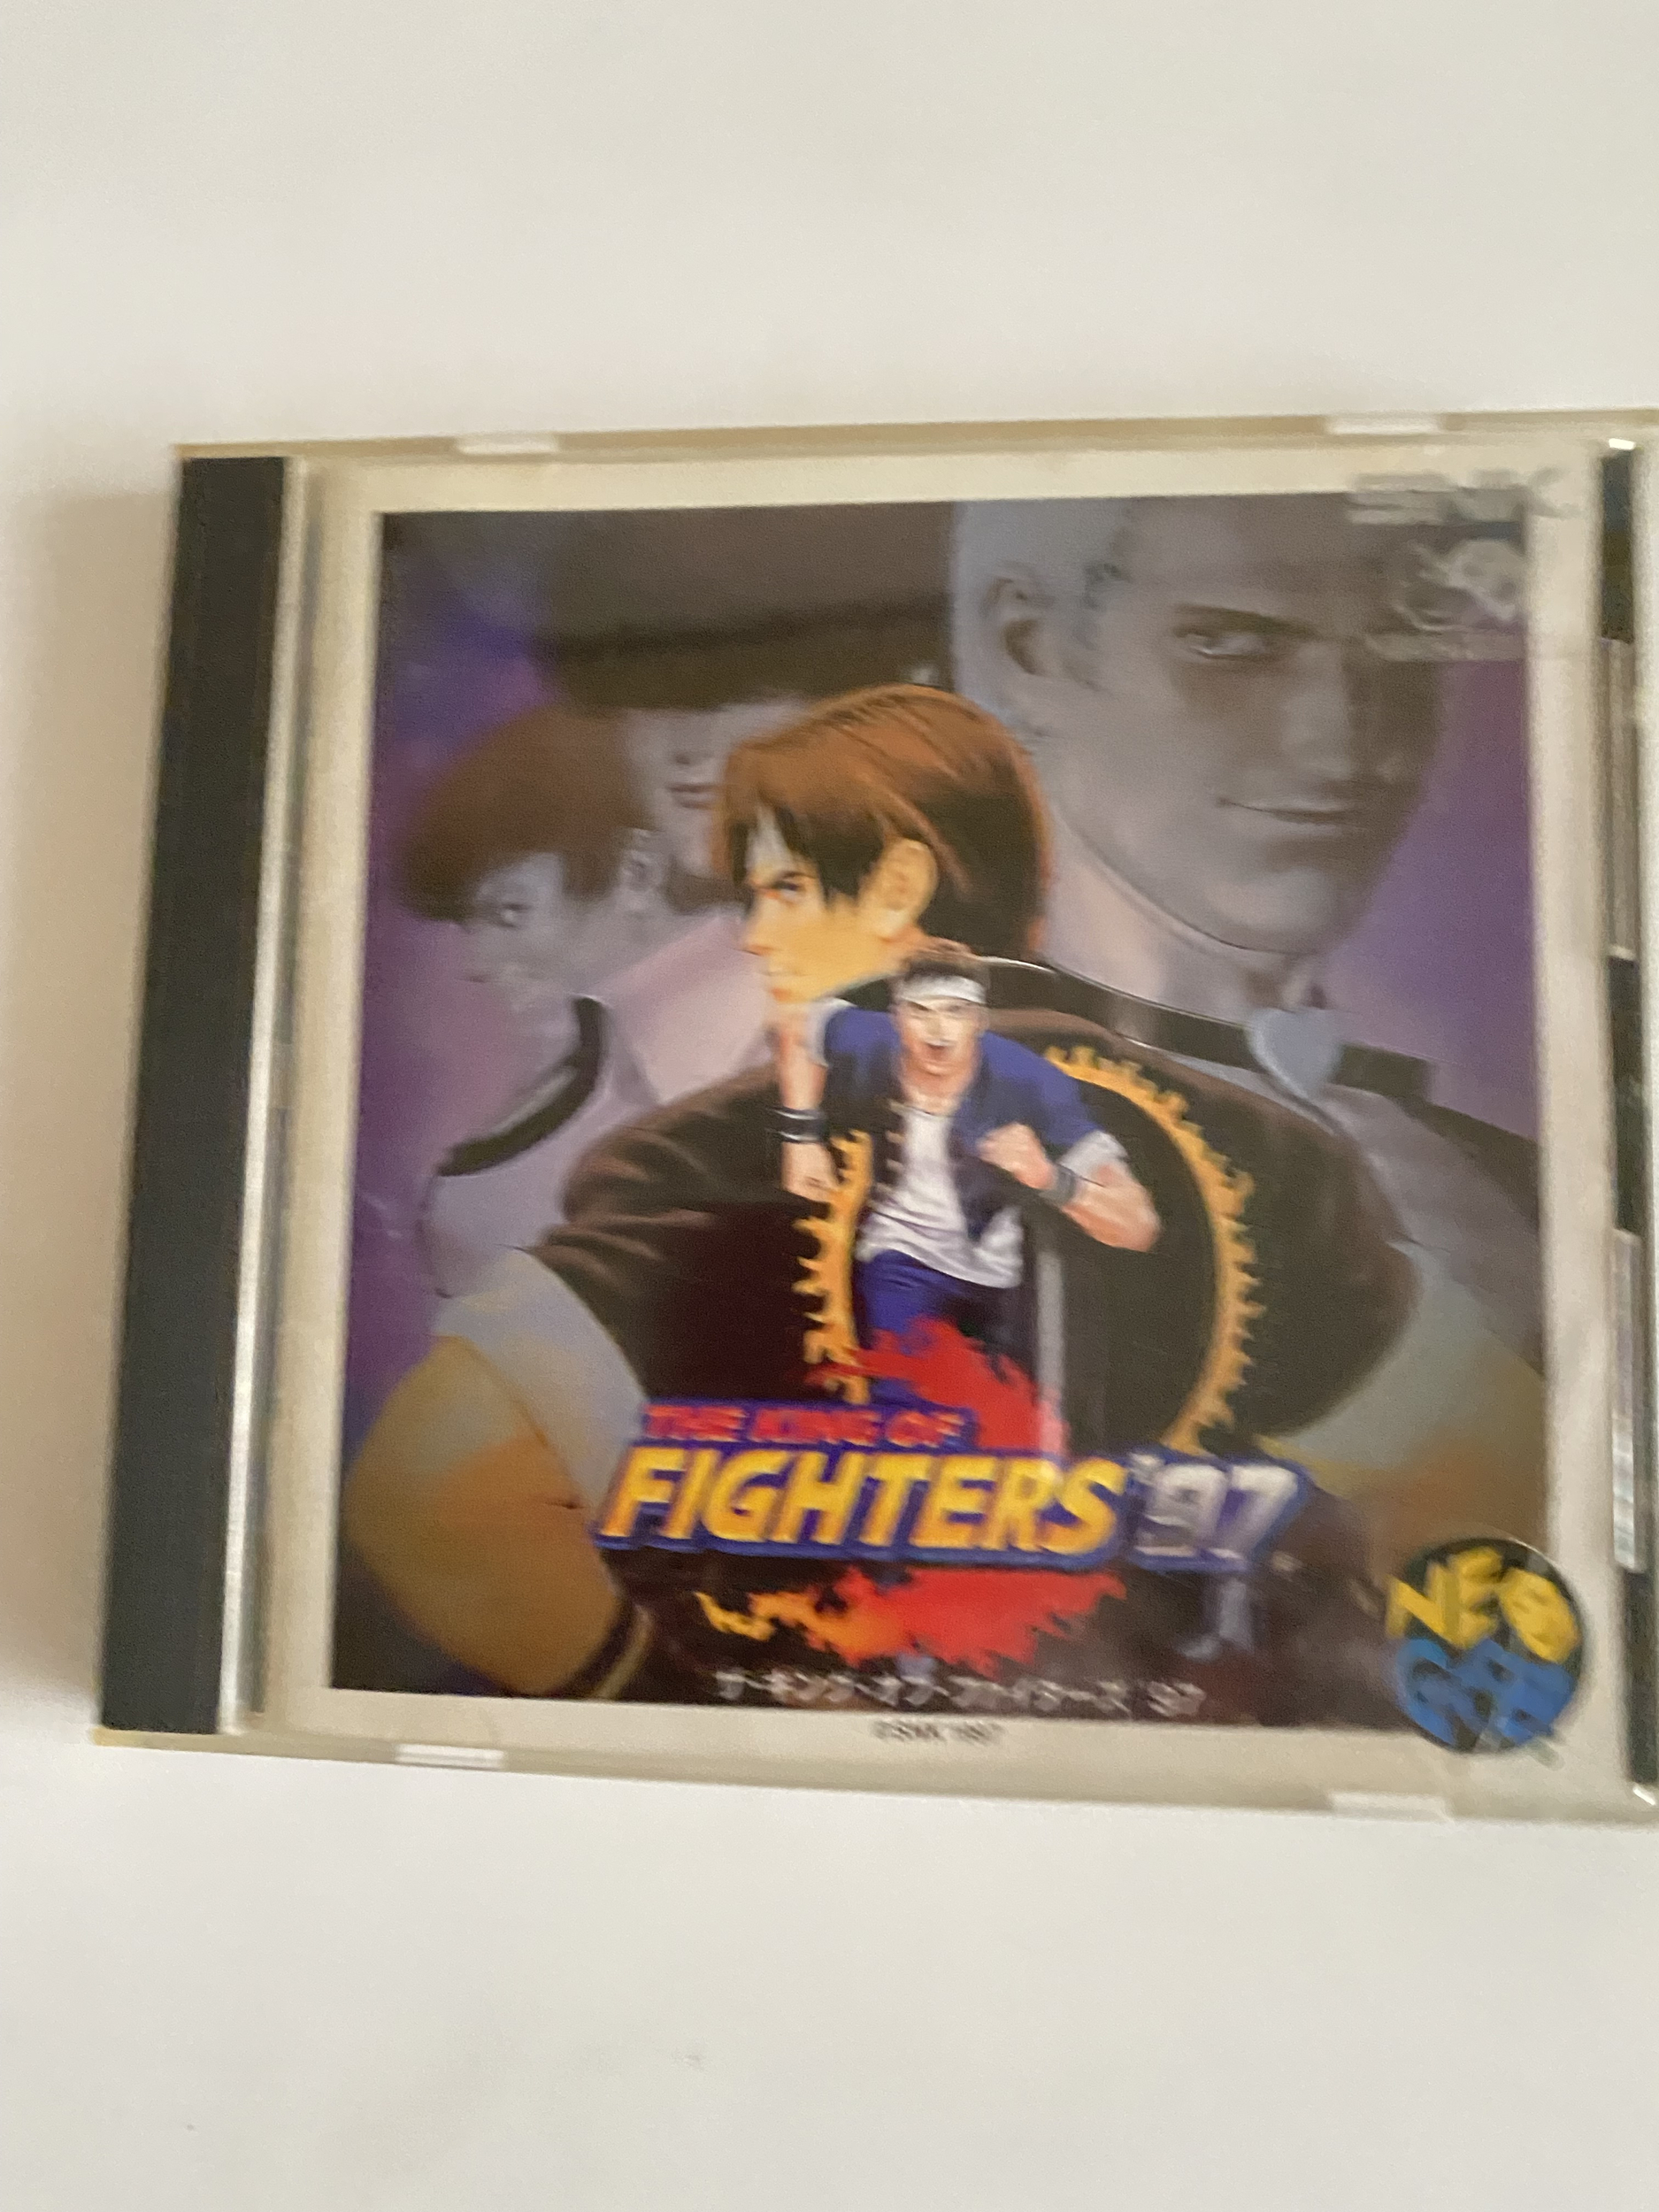 The king of Fighter 97 - Neo Geo CD